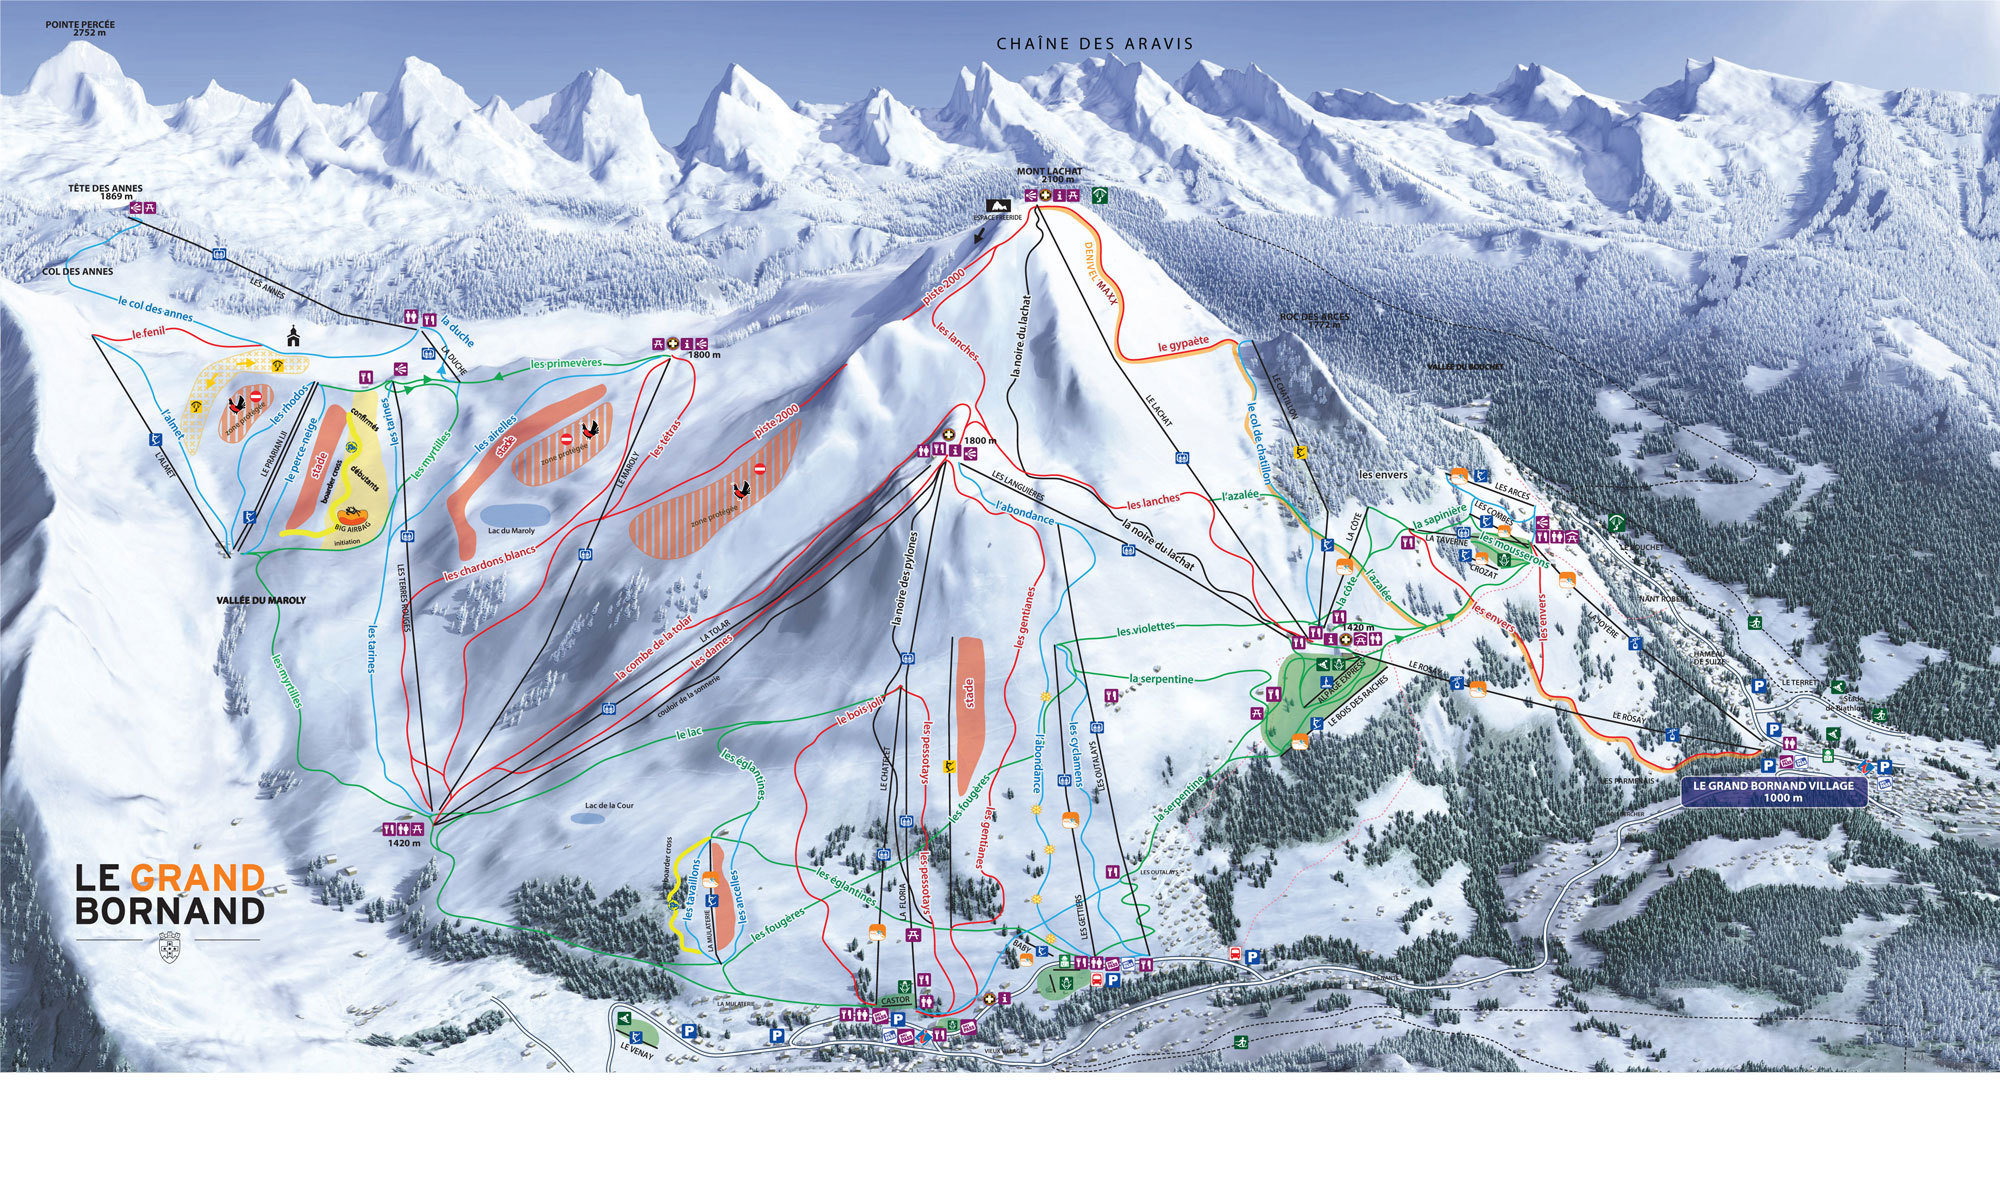 Le Grand Bornand Piste Map Ski Area Info from Local Experts